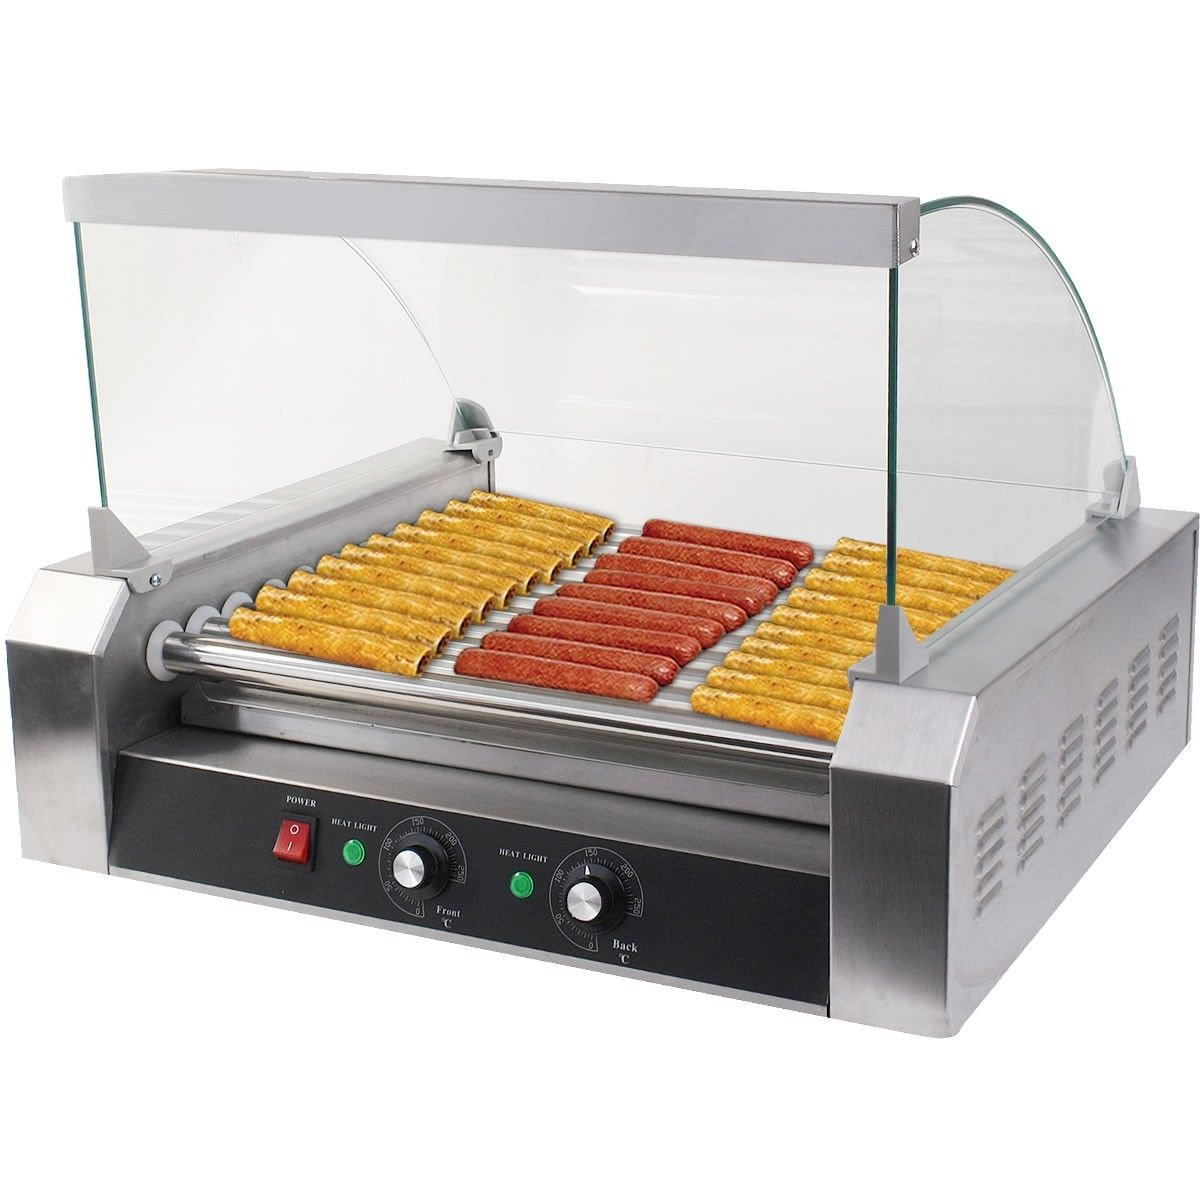 Costway Commercial 30 Hot Dog 11 Roller Grill Cooker Machine W/ cover CE